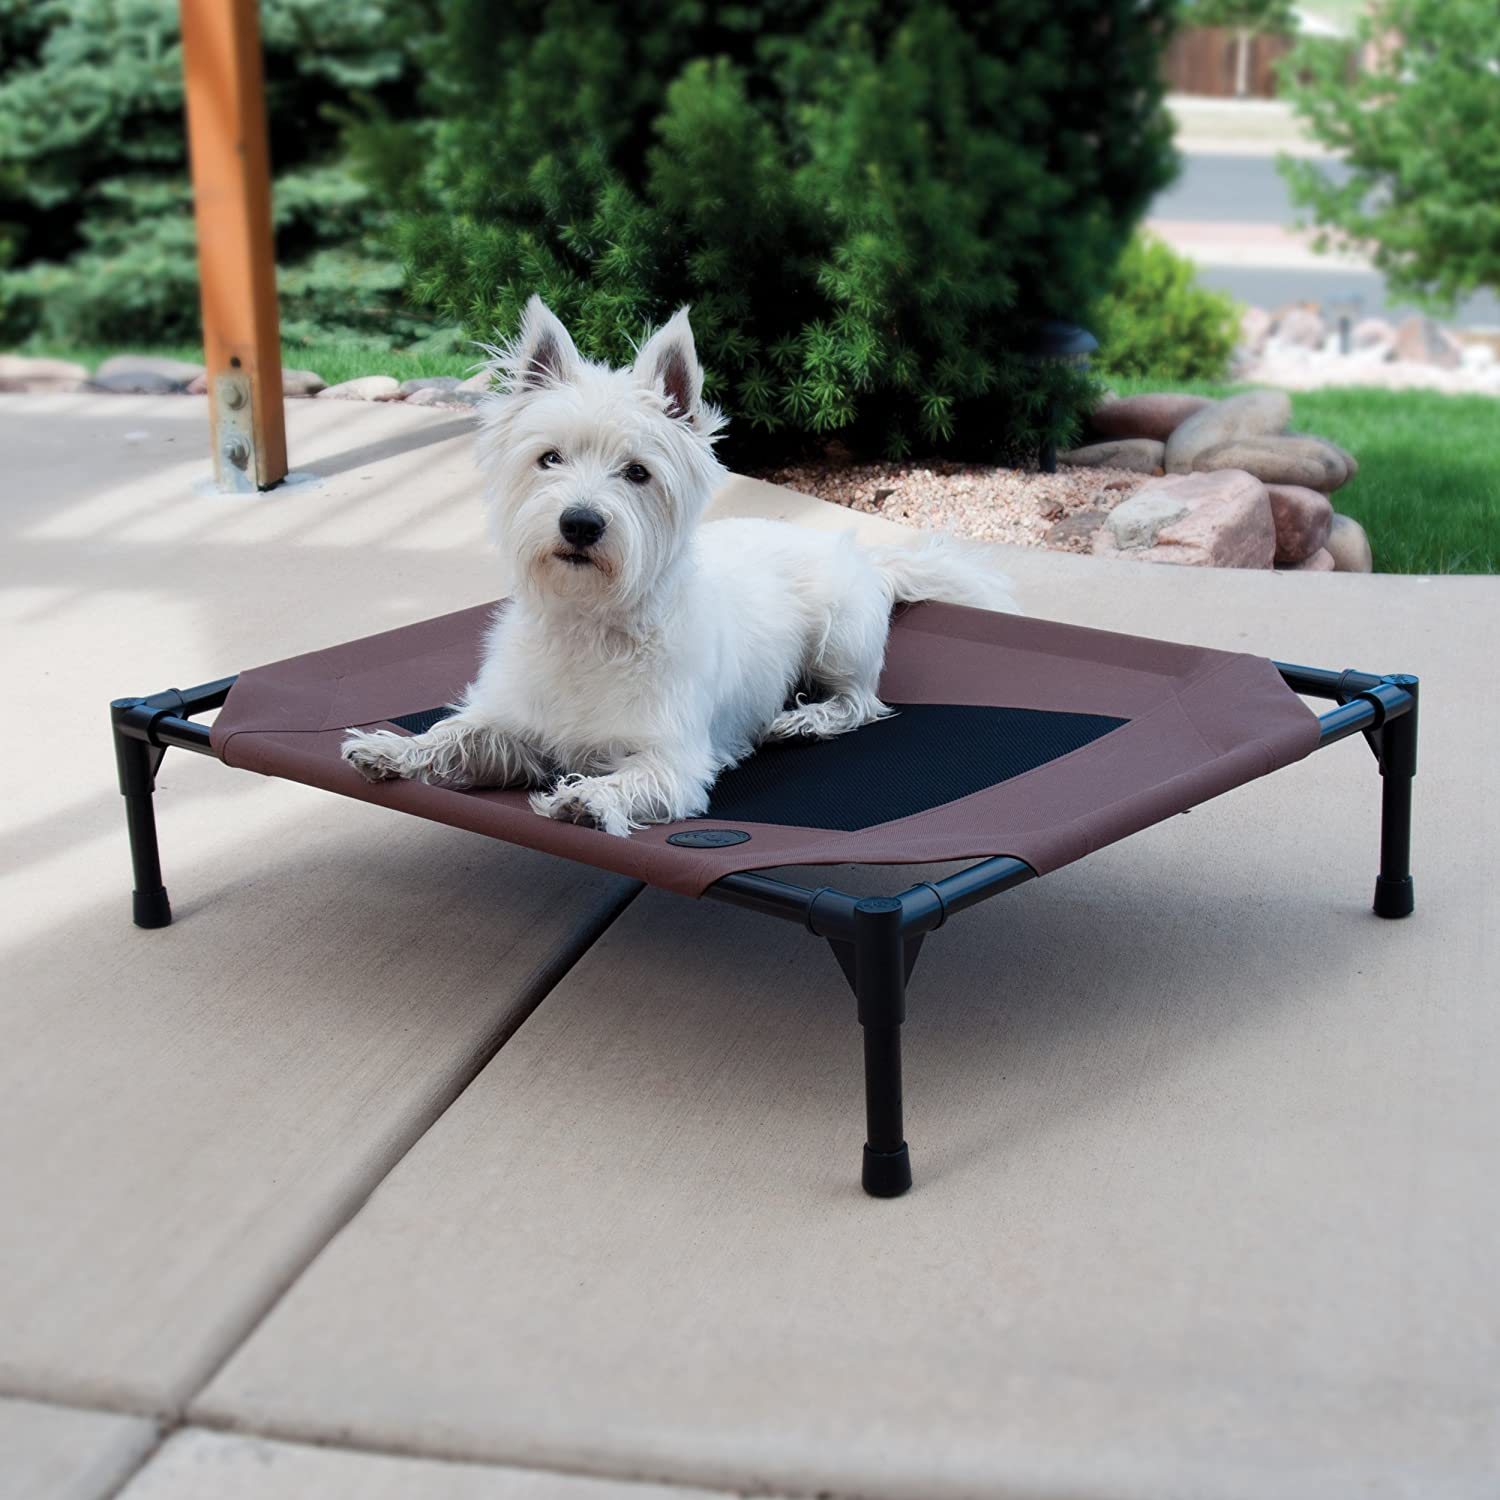 Top 10 Dog Beds And Furniture Products: Ease Of Use, Comfort & Convenience 12